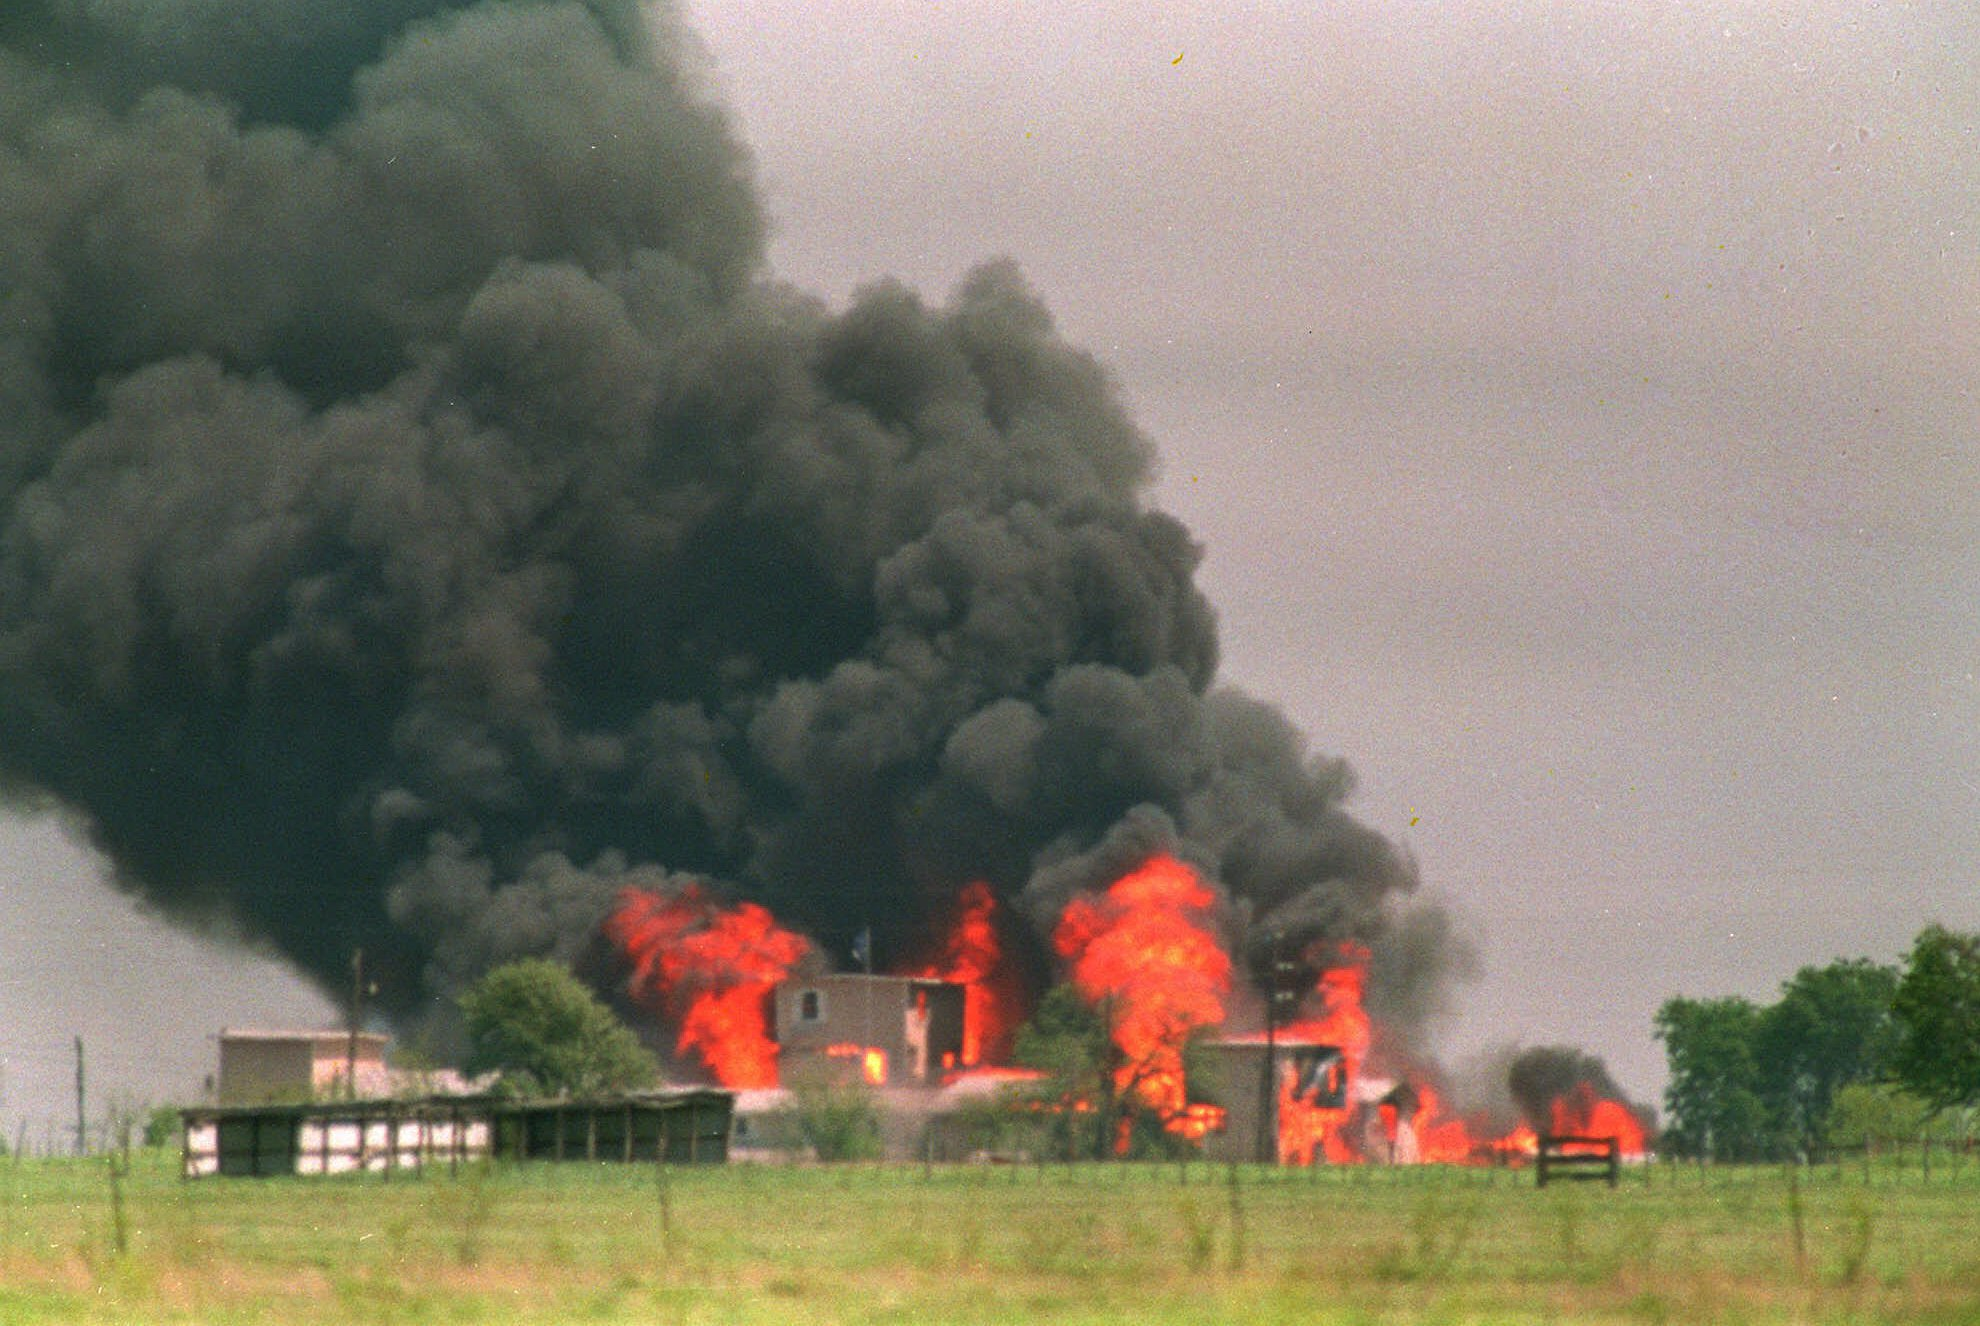 Fiery siege at Branch Davidian compound reverberates 25 years later